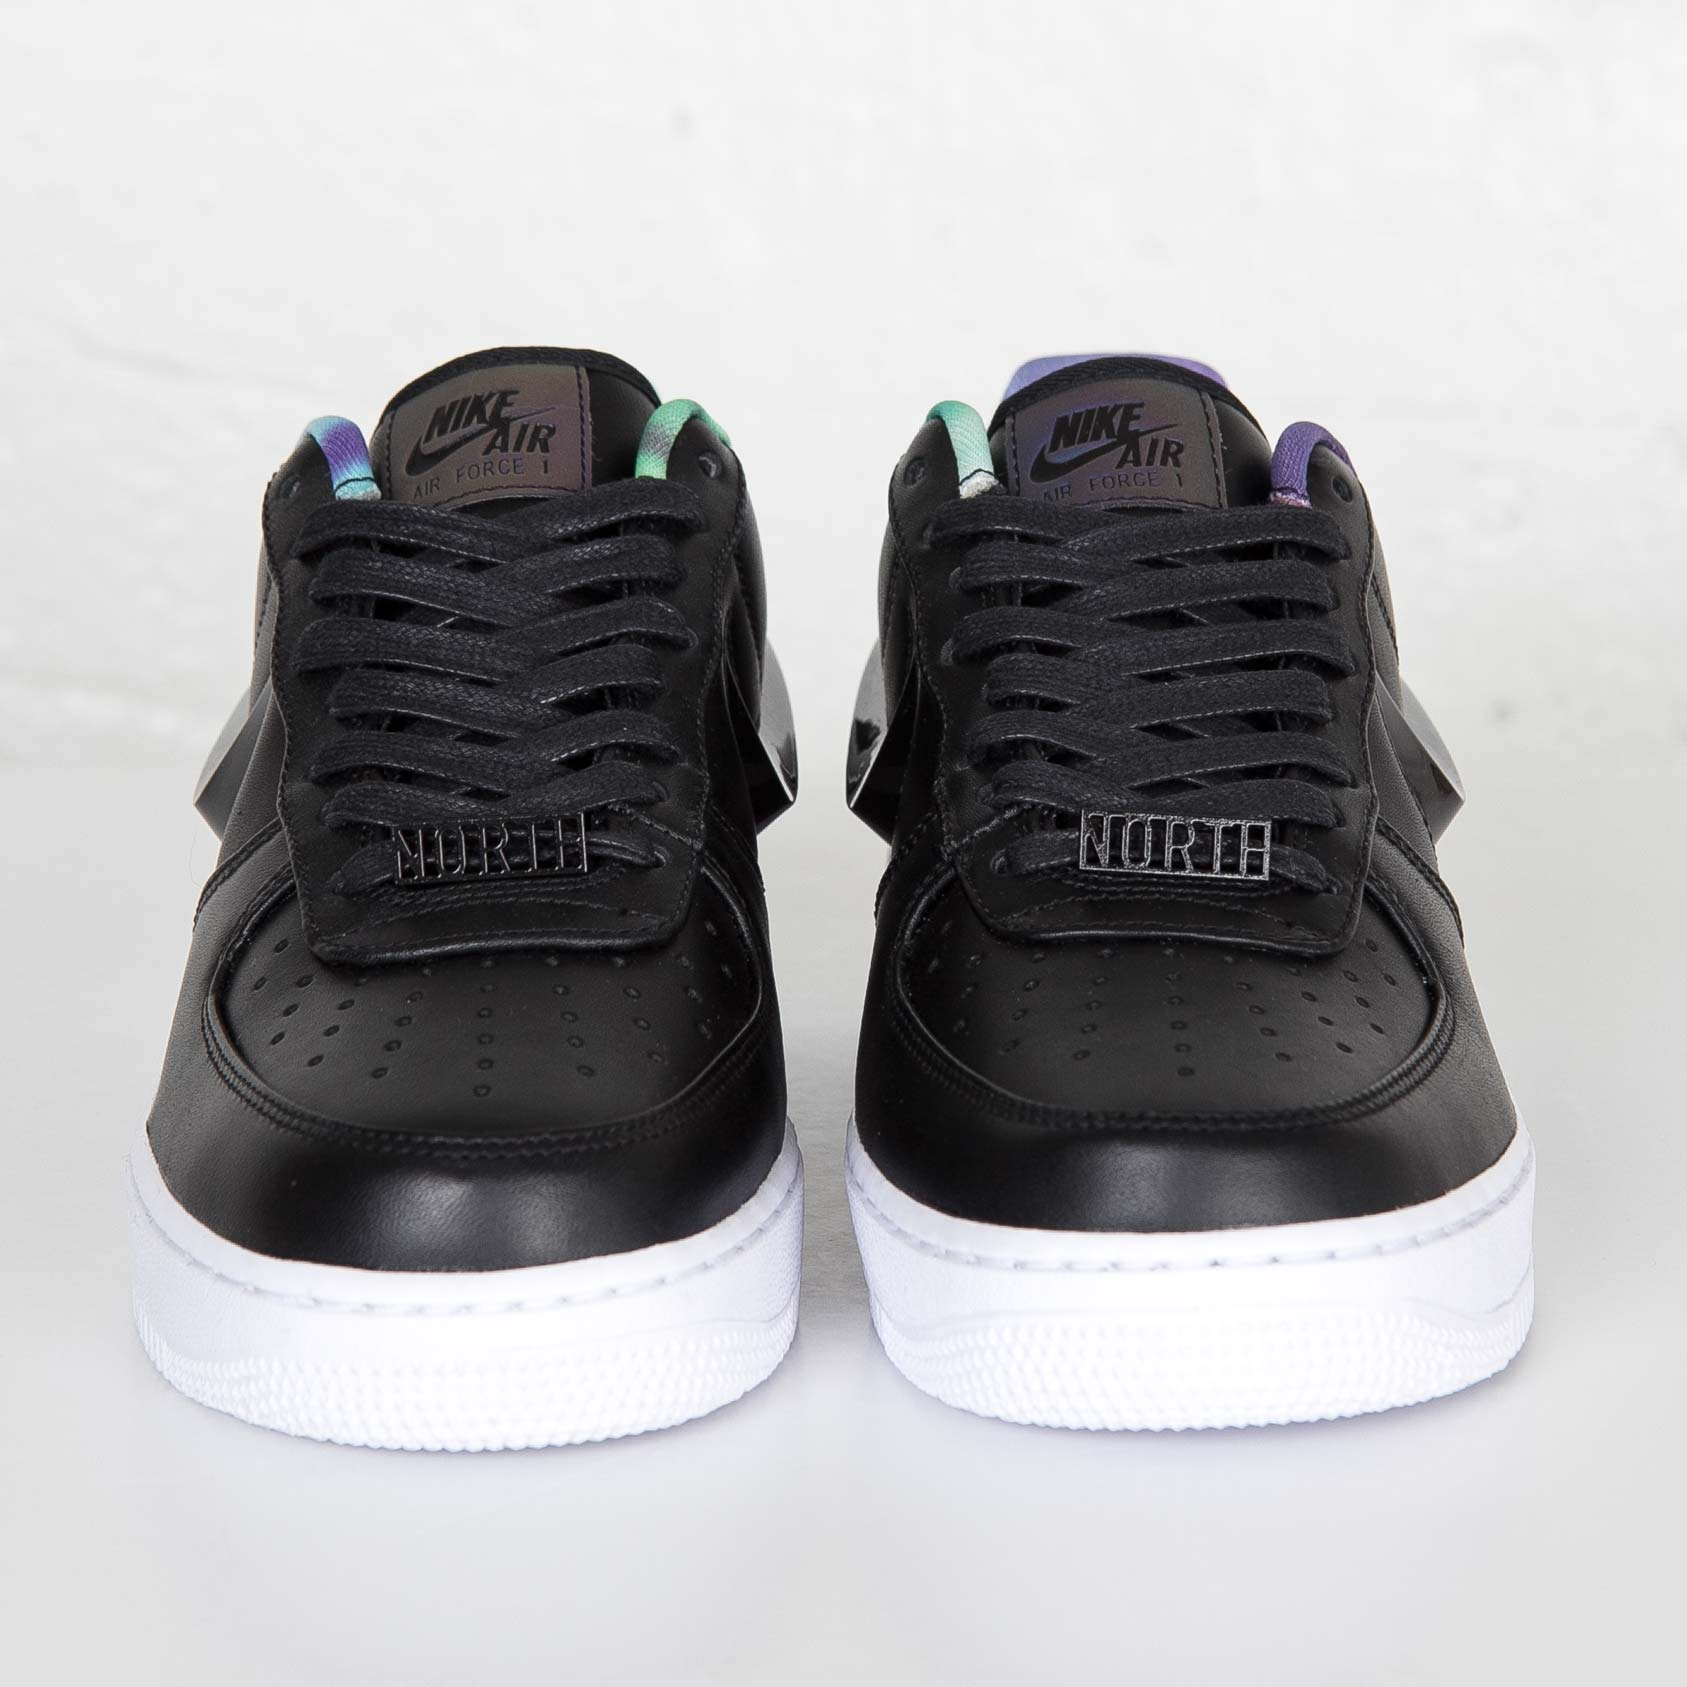 lowest price 488e5 69429 Nike Air Force 1 07 Lv8 AS QS - 840855-001 - Sneakersnstuff   sneakers    streetwear online since 1999